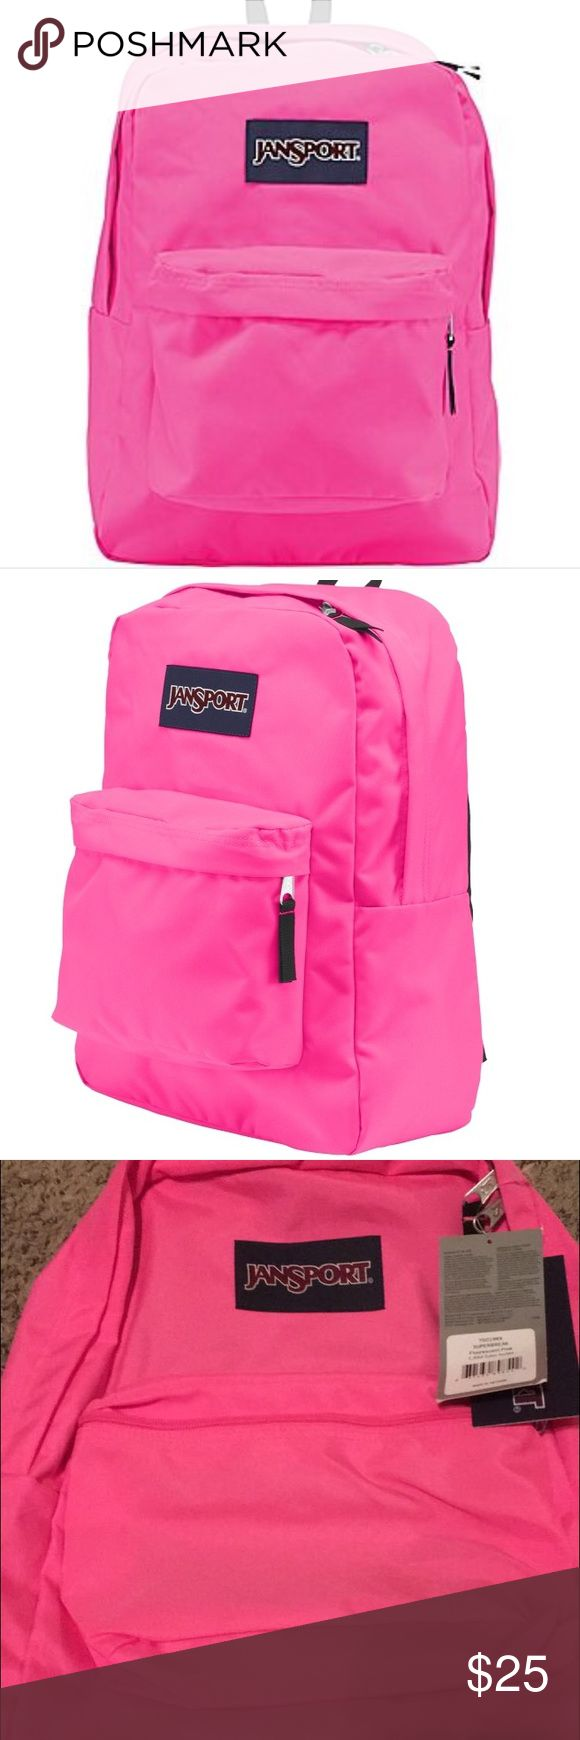 Hot Pink NWT Jansport Backpack! NWT hot pink Jansport backpack! Bought awhile ago and never used. In perfect condition, fun and functional. Comment with any questions! Xx. Jansport Bags Backpacks